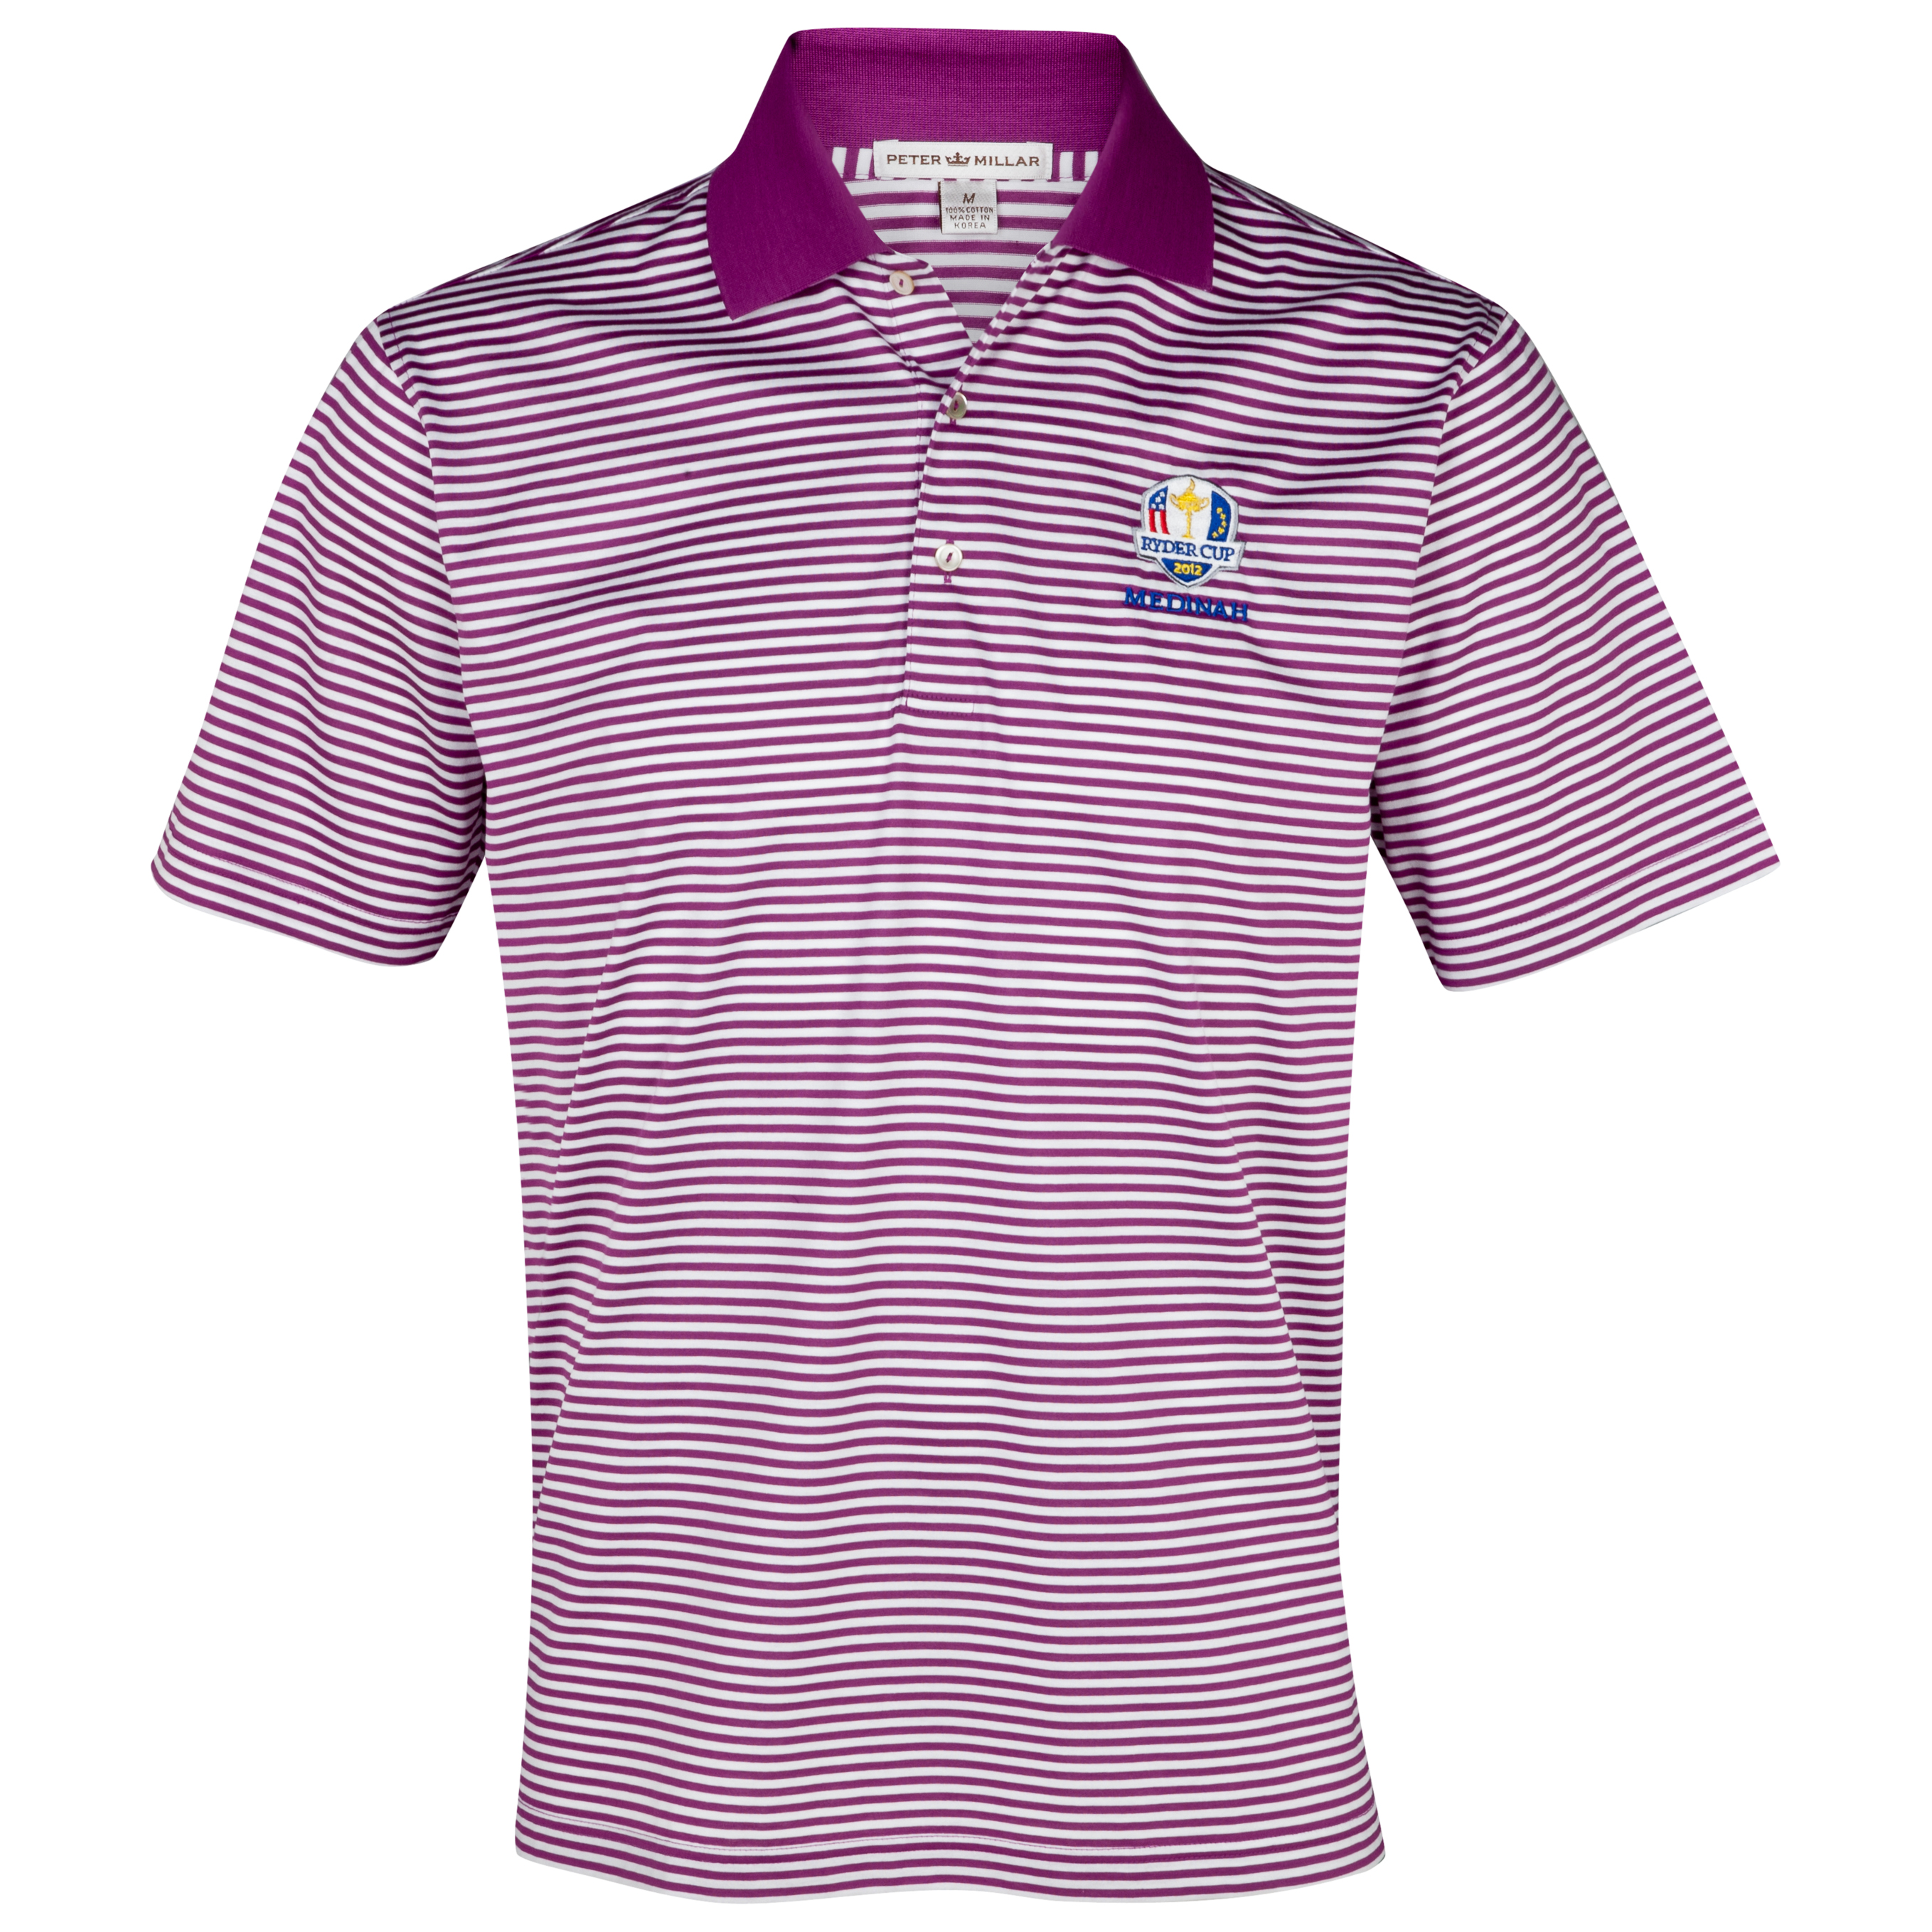 The Ryder Cup Medinah 2012 Peter Millar Luxury Stripe Polo - Raspberry/White